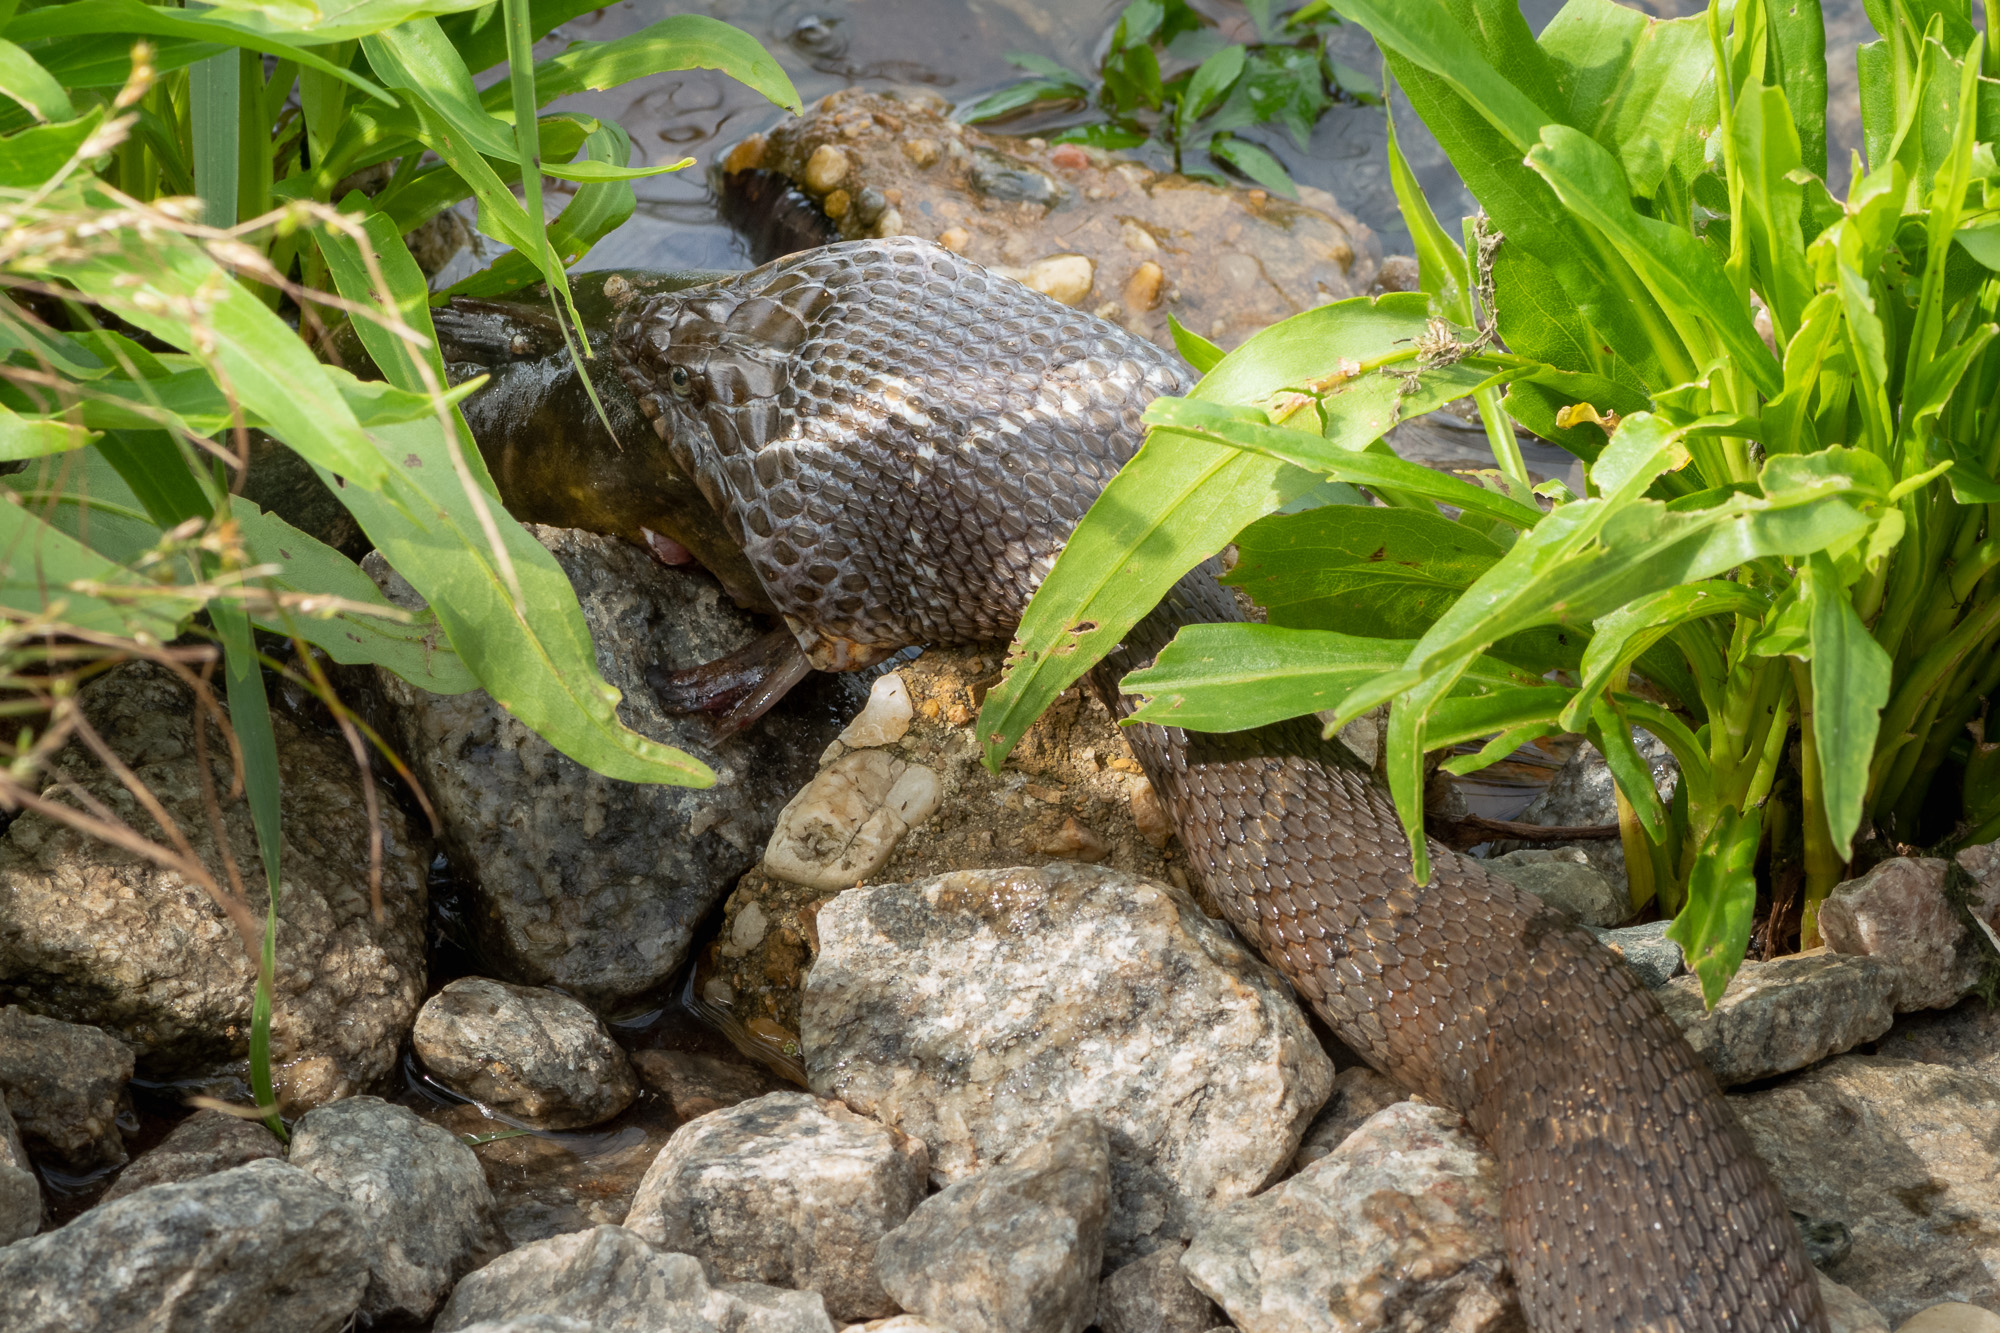 Zooming in on the head of the Northern Watersnake, its mouth open wide around its prey.